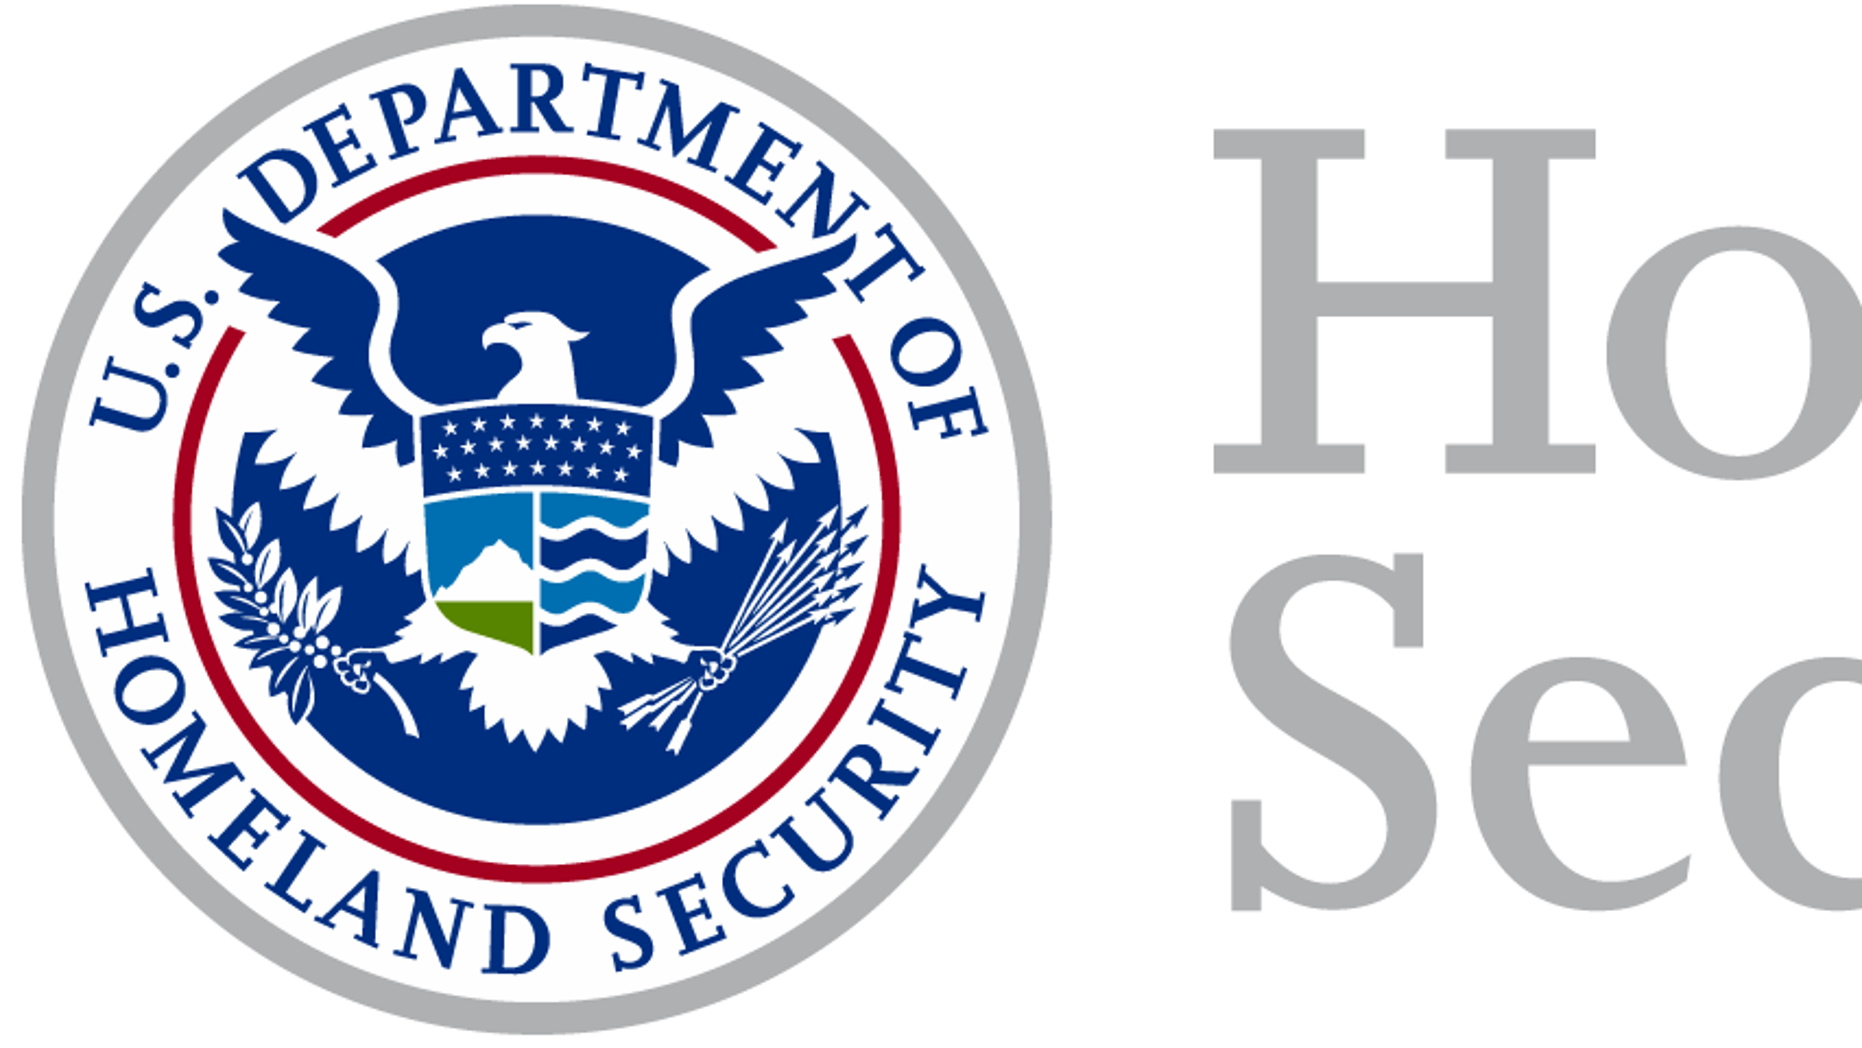 Department of Homeland Security logo.